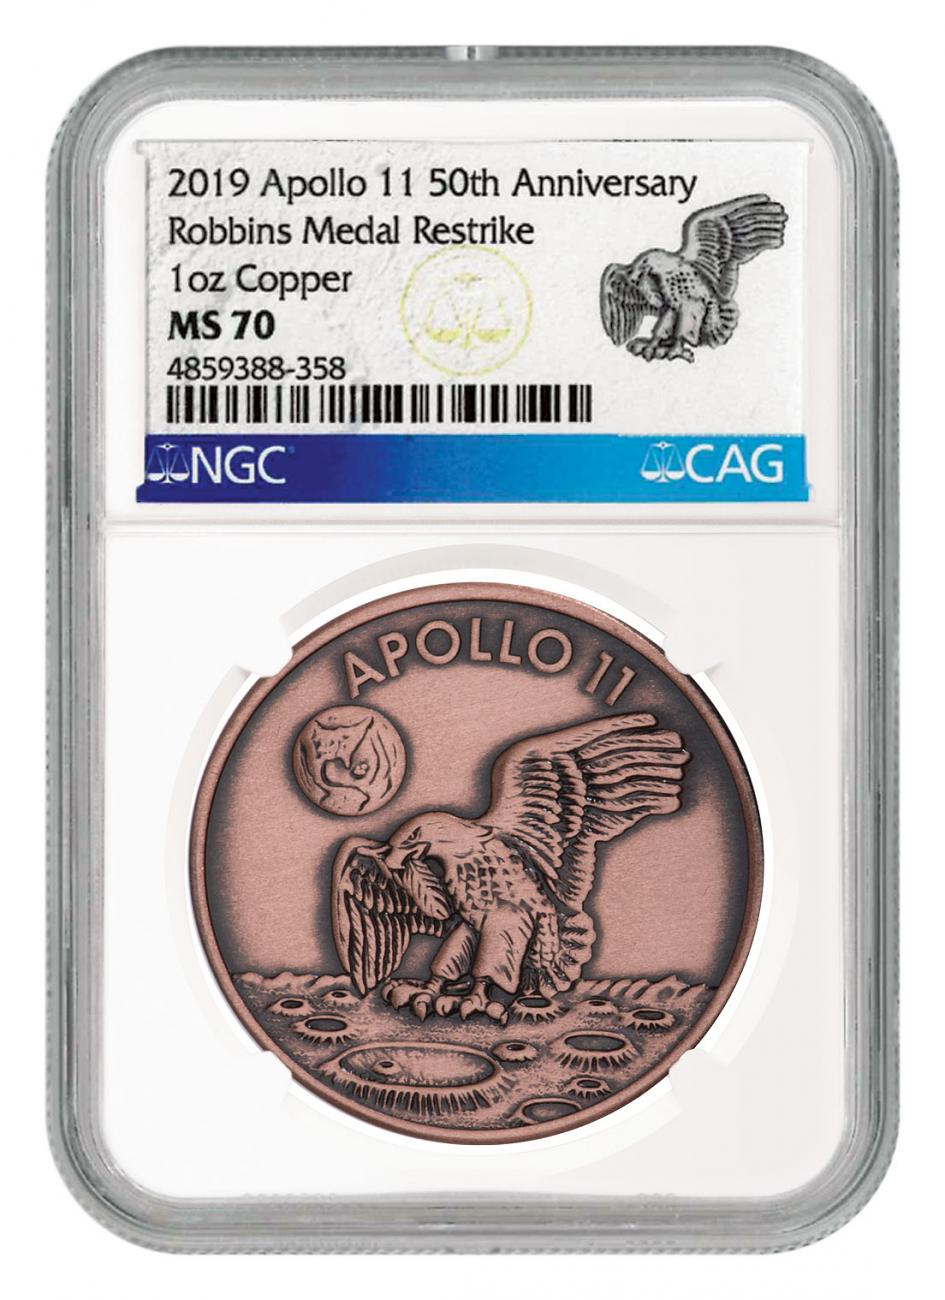 1969-2019 Apollo 11 50th Anniversary Robbins Medals 1 oz Copper Antiqued Medal NGC MS70